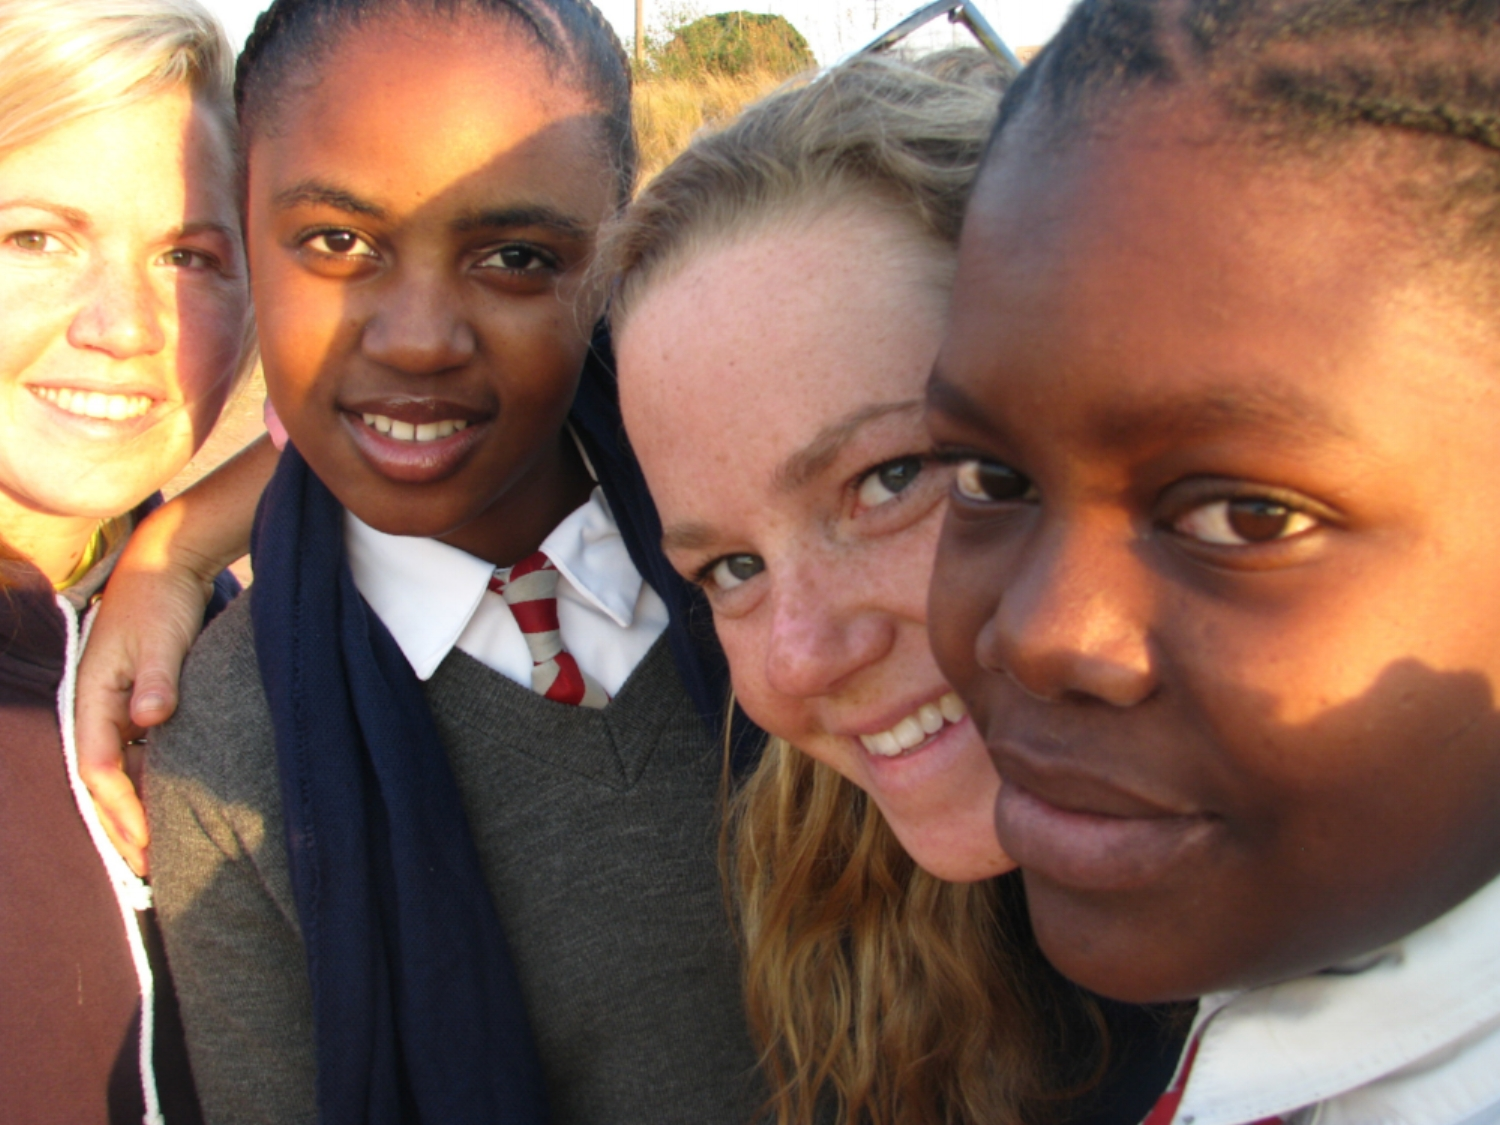 WAVERLY GIRLS, South Africa